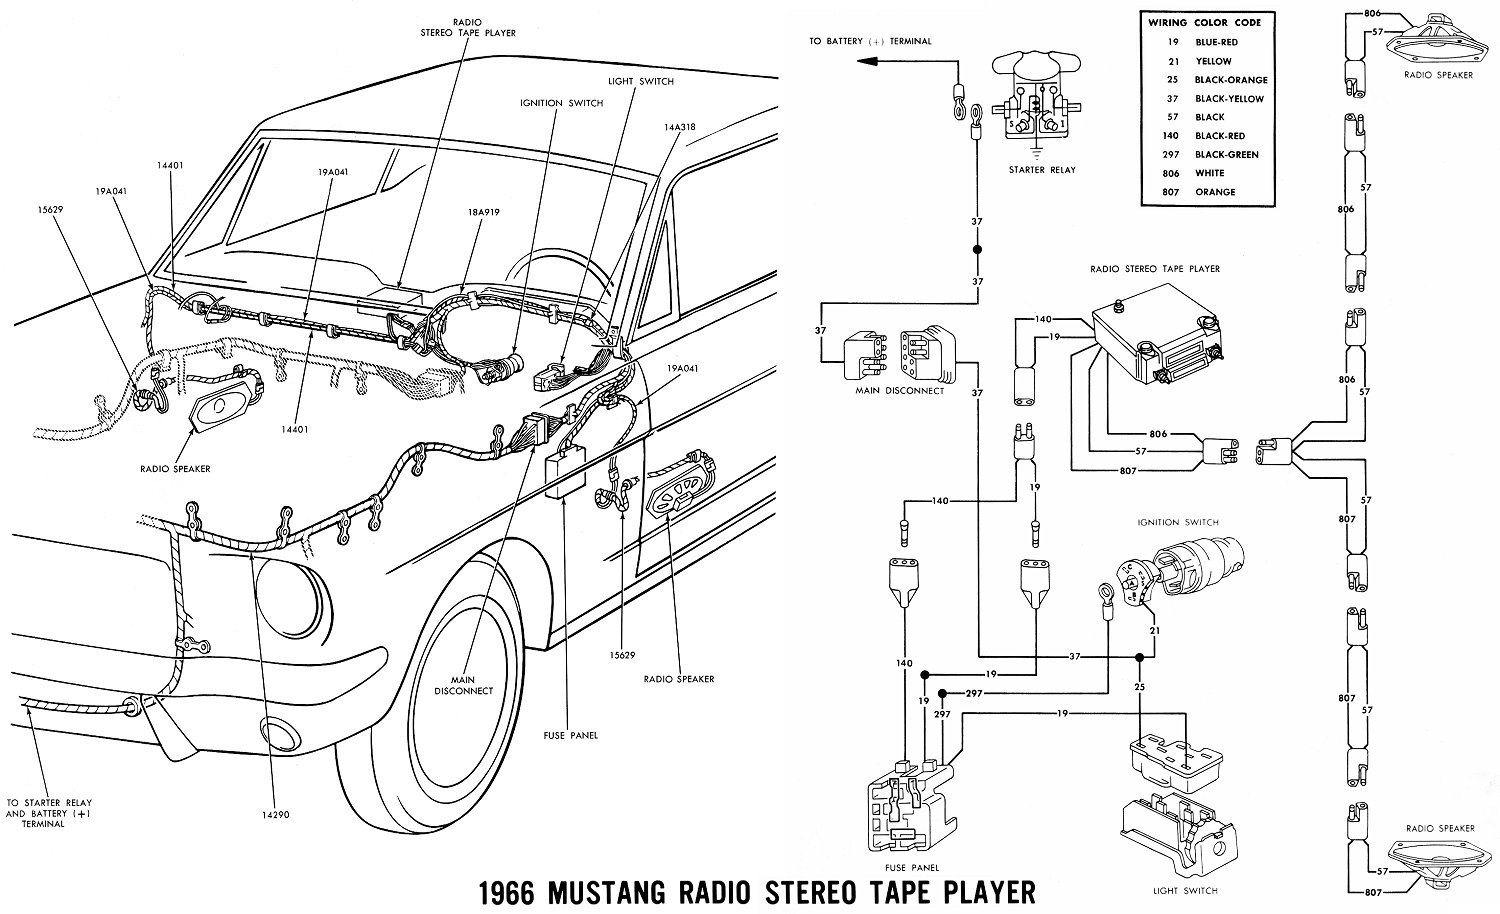 1966 mustang wiring diagrams - average joe restoration 1966 mustang wiring diagram pdf